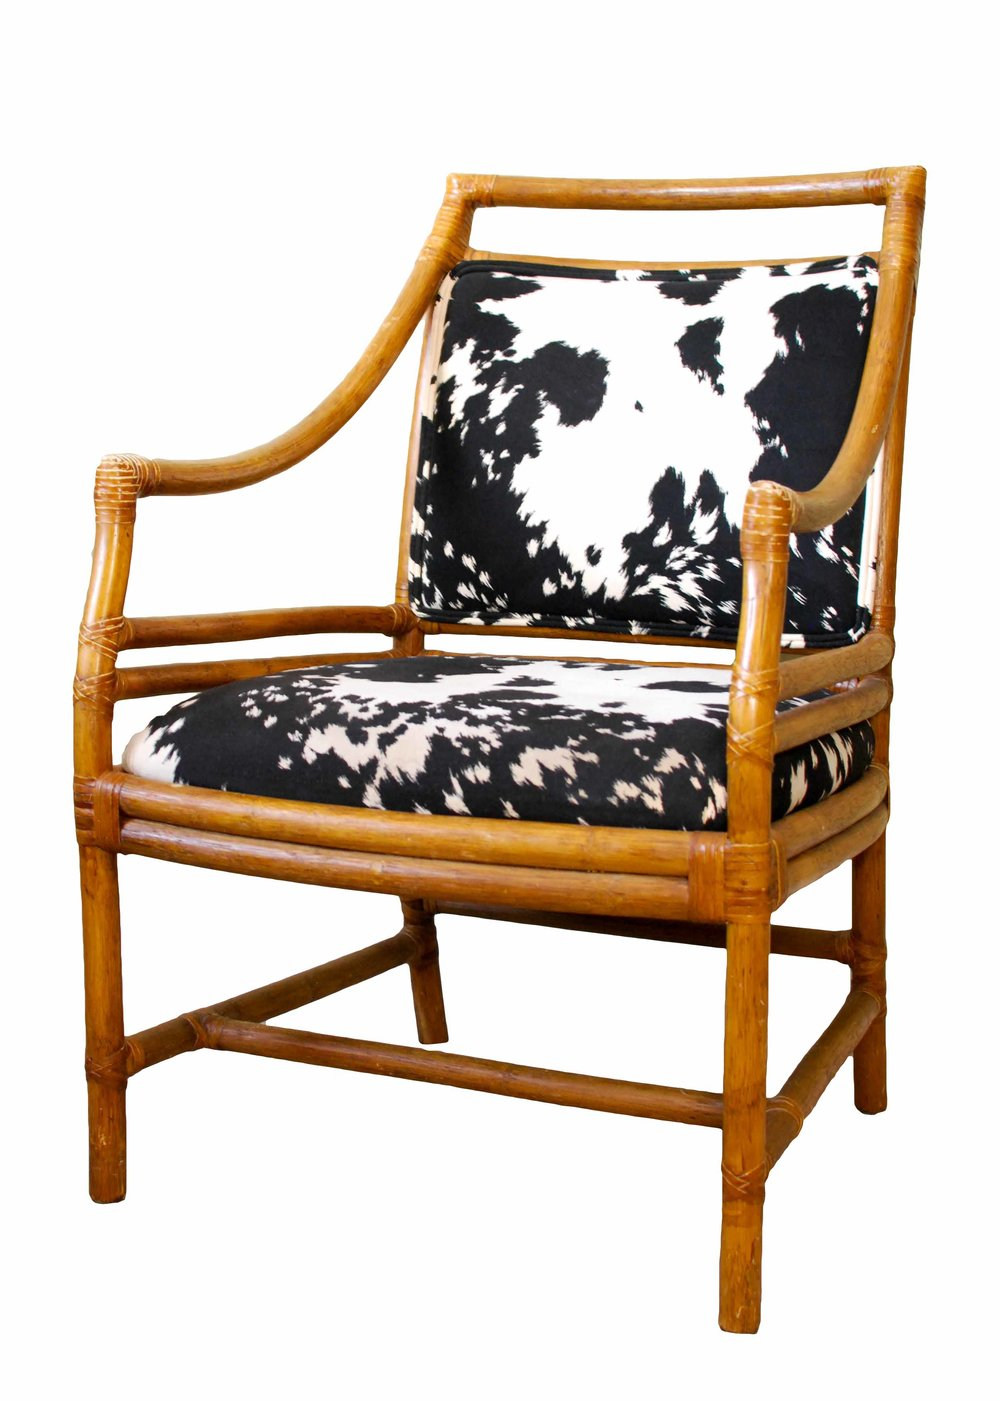 COWHIDE bamboo chair